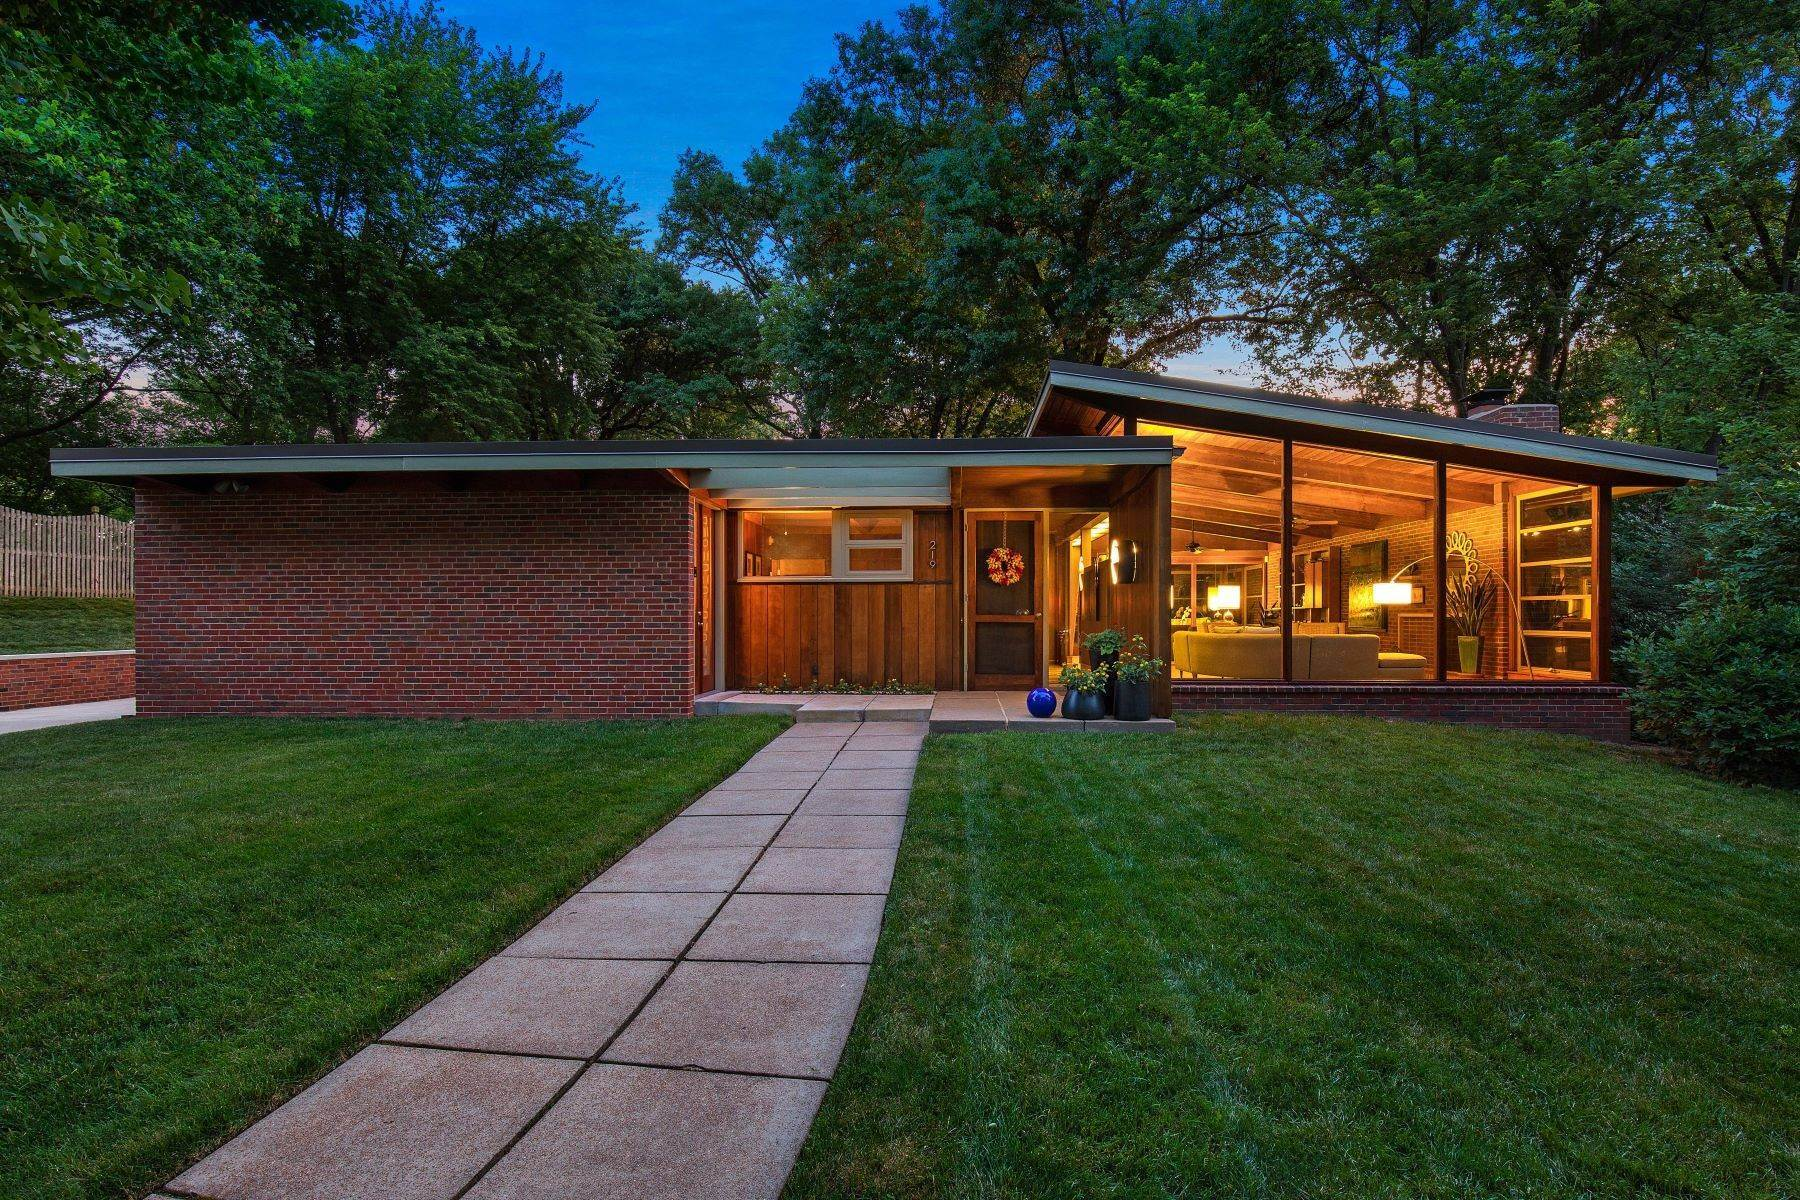 Single Family Homes for Sale at The Harry Hammerman House, an Important Mid-Century Masterpiece 219 Graybridge Road St. Louis, Missouri 63124 United States